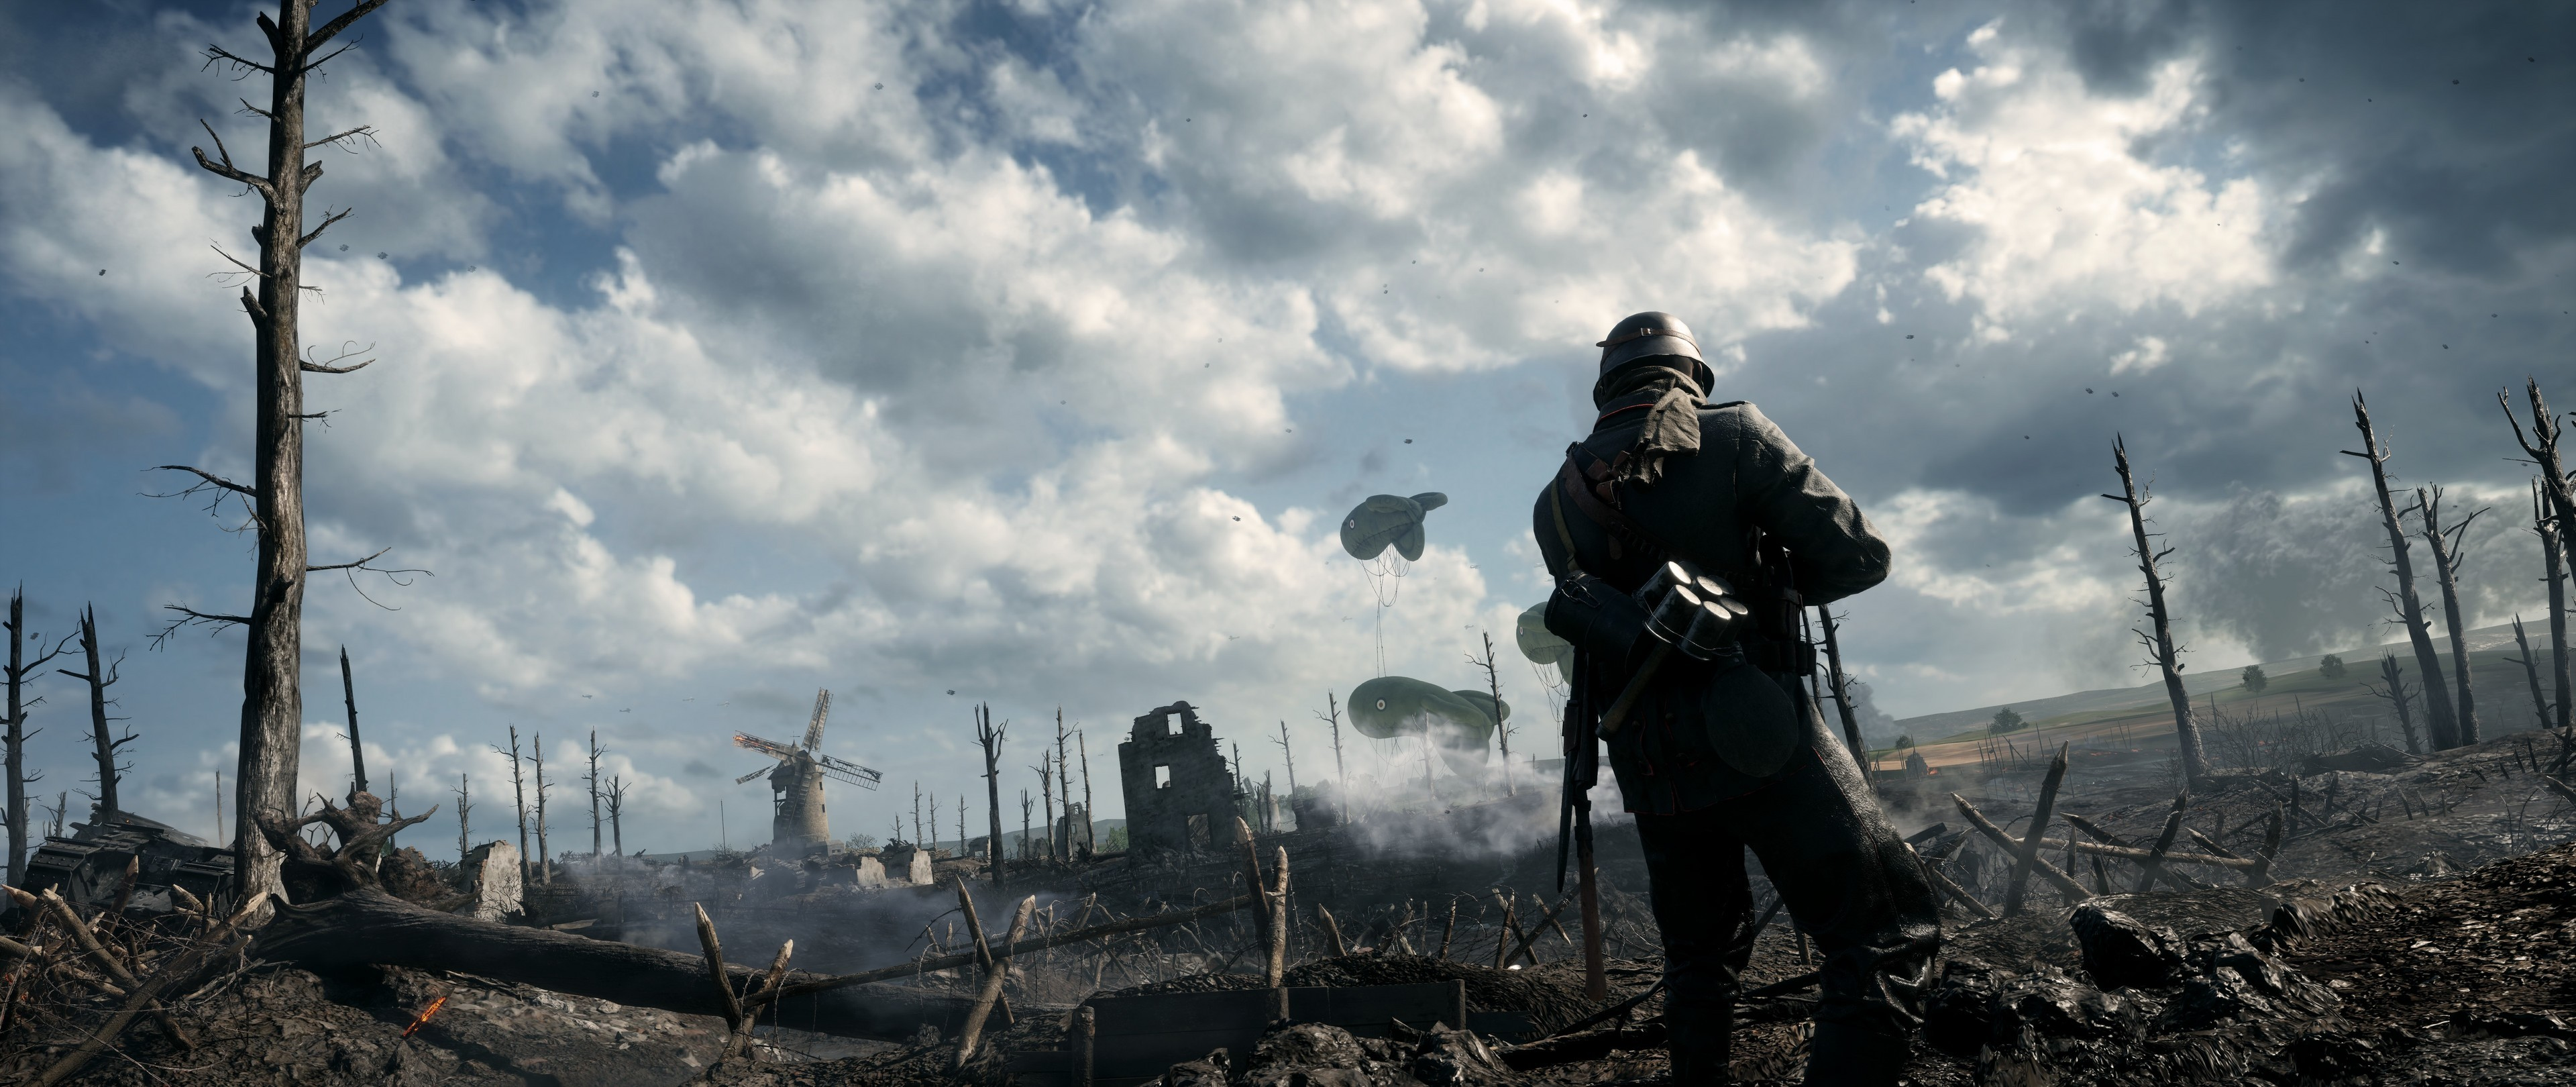 Battlefield 1 Wallpaper, Games / Action: Battlefield 1, soldier, best ...